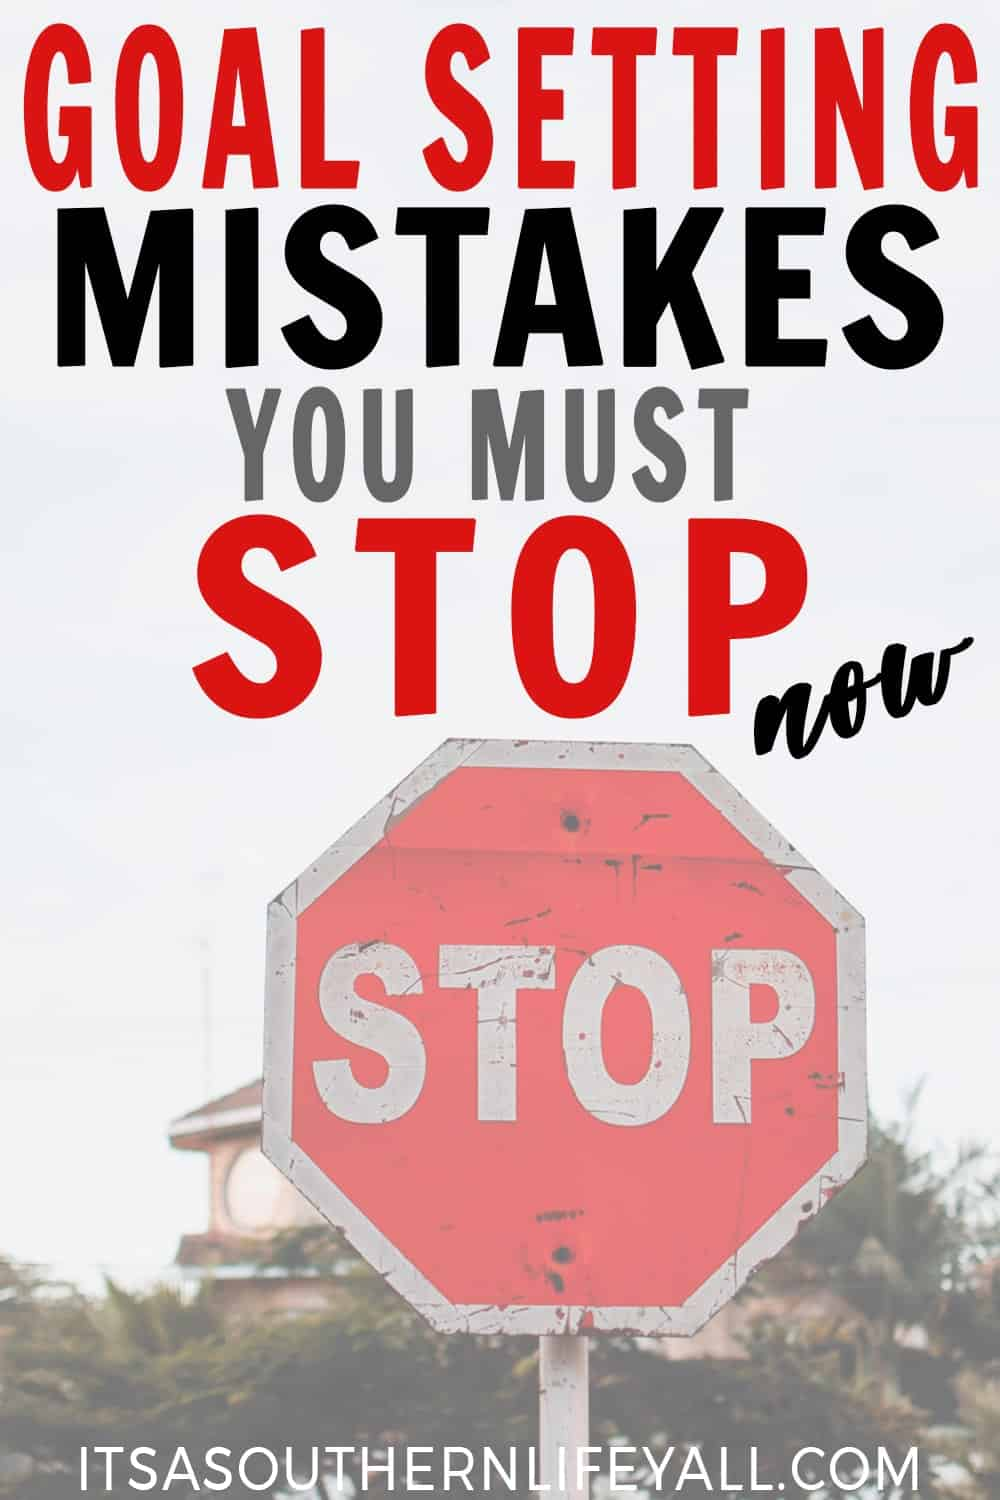 Stop sign with goal setting mistakes you must stop now text overlay